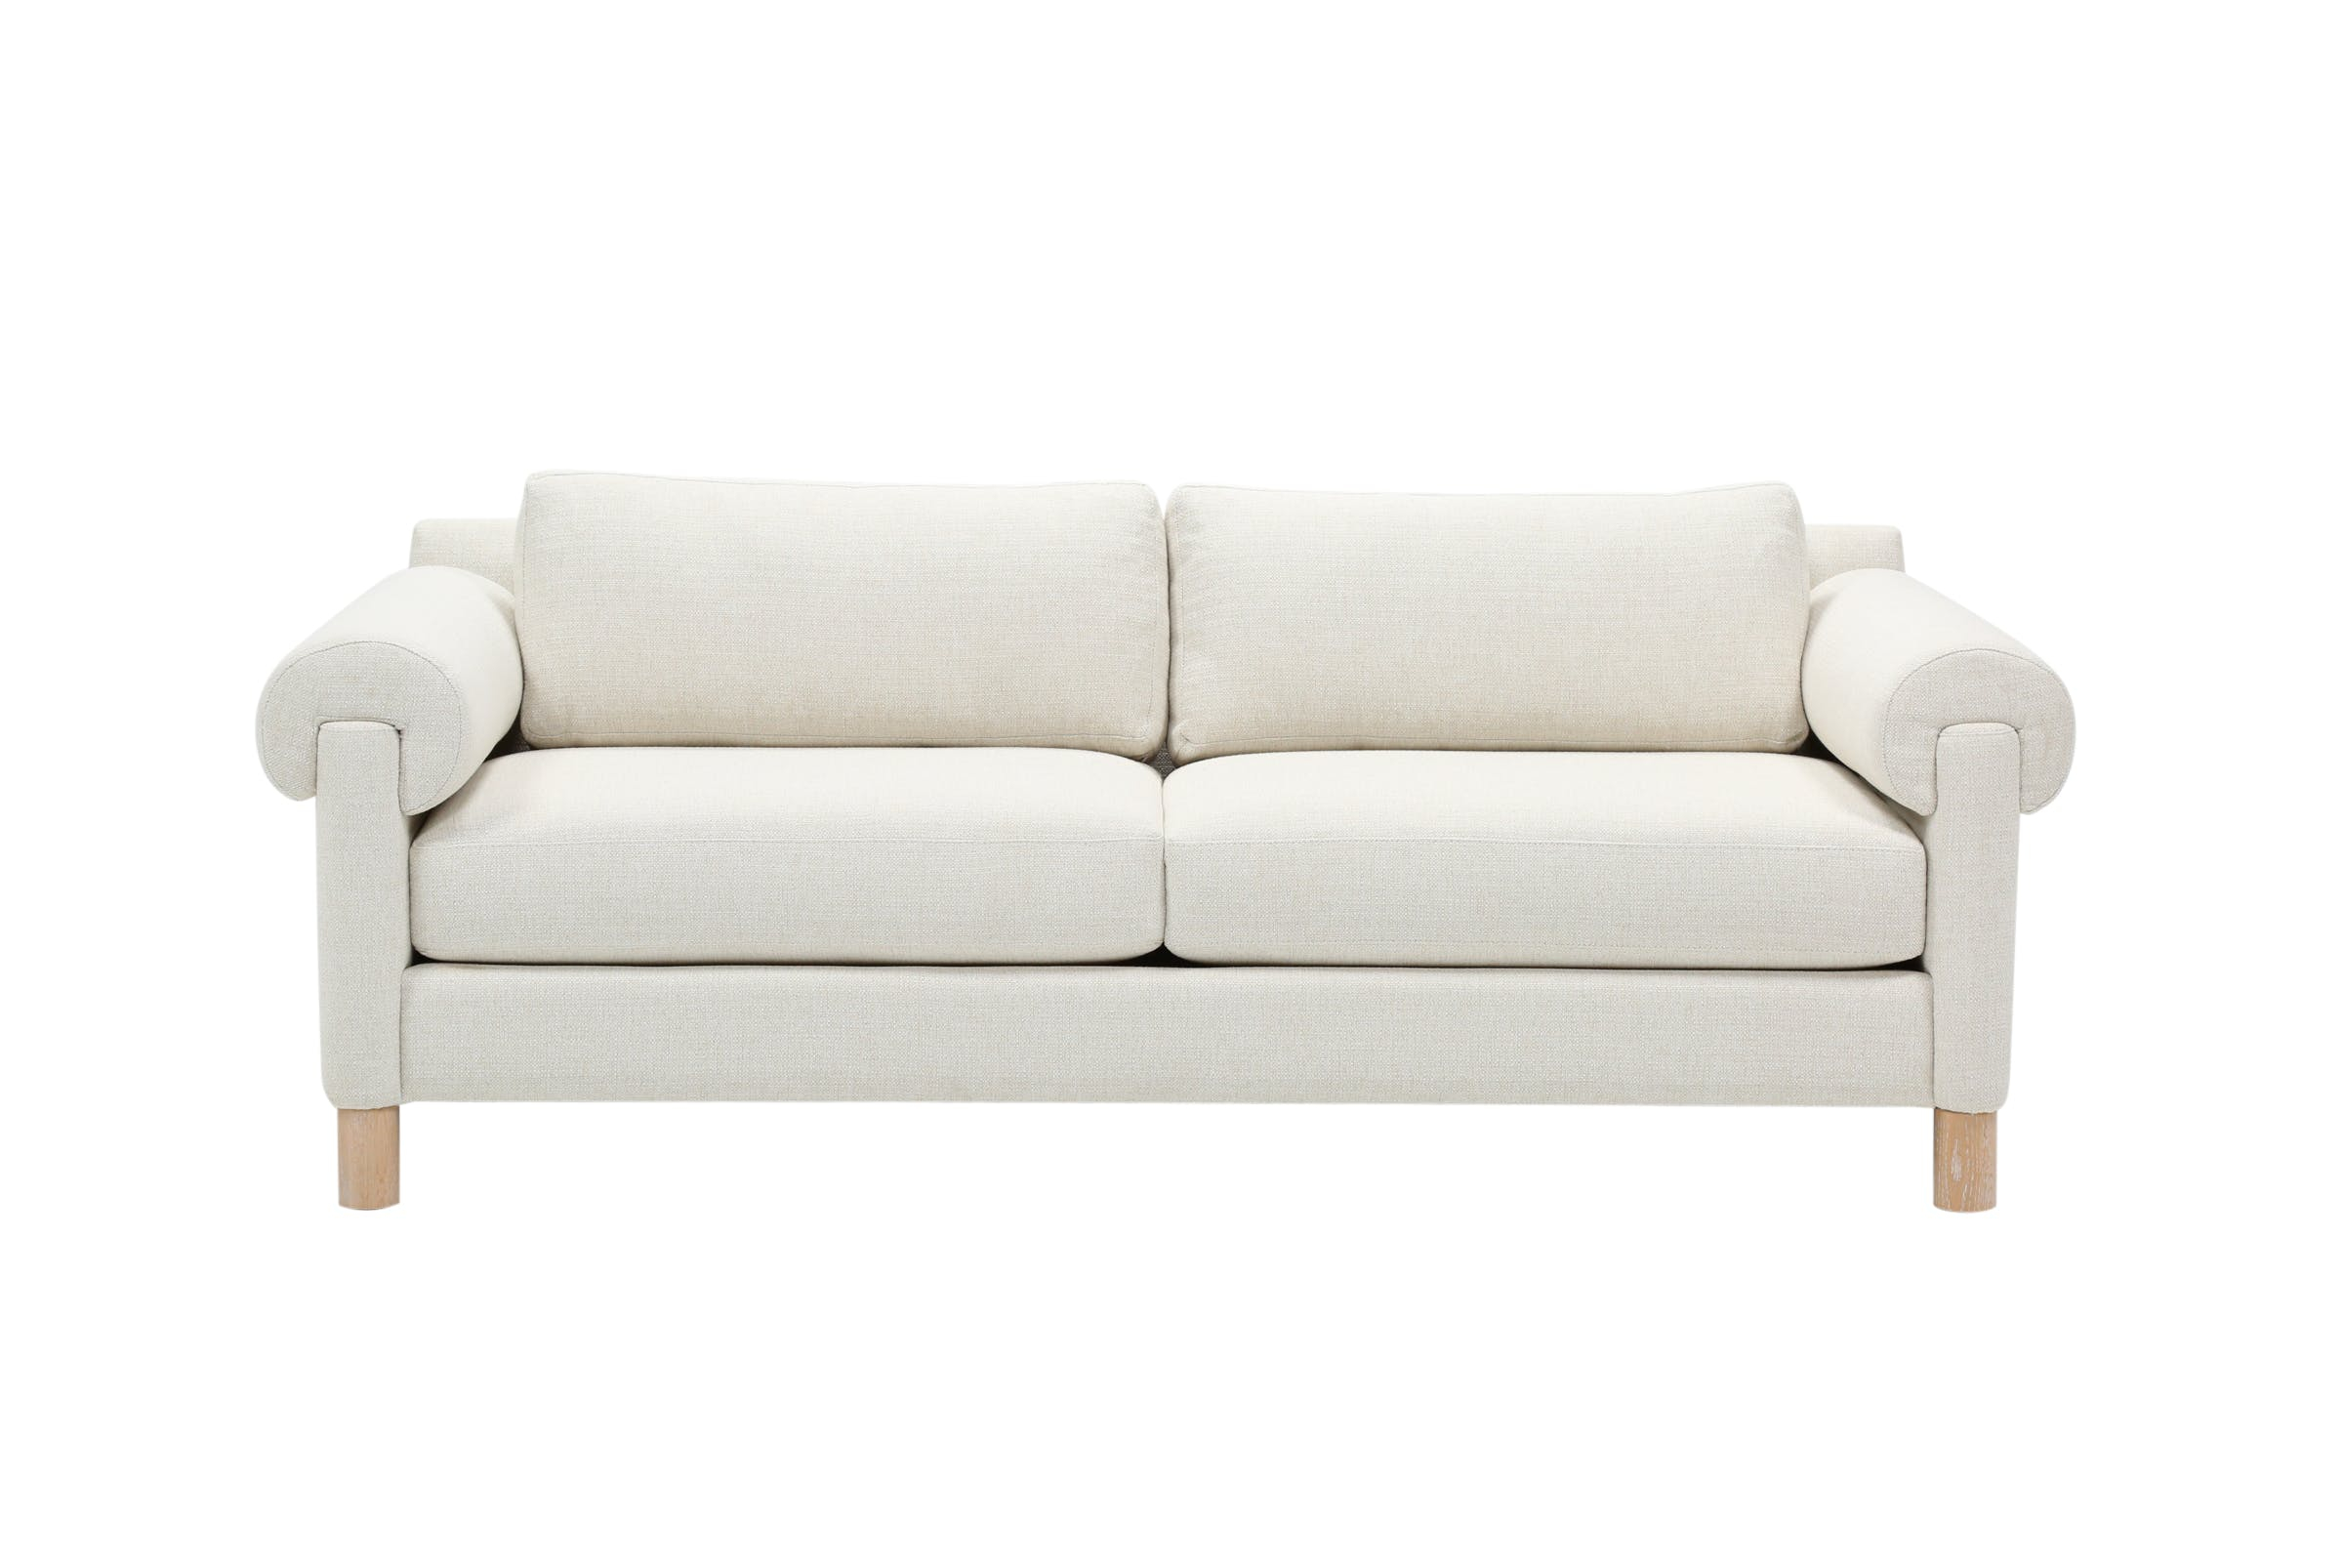 Nate Berkus Just Launched A Home Collection With Hubby Jeremiah For Matteo Arm Sofa Chairs By Nate Berkus And Jeremiah Brent (Photo 7 of 25)